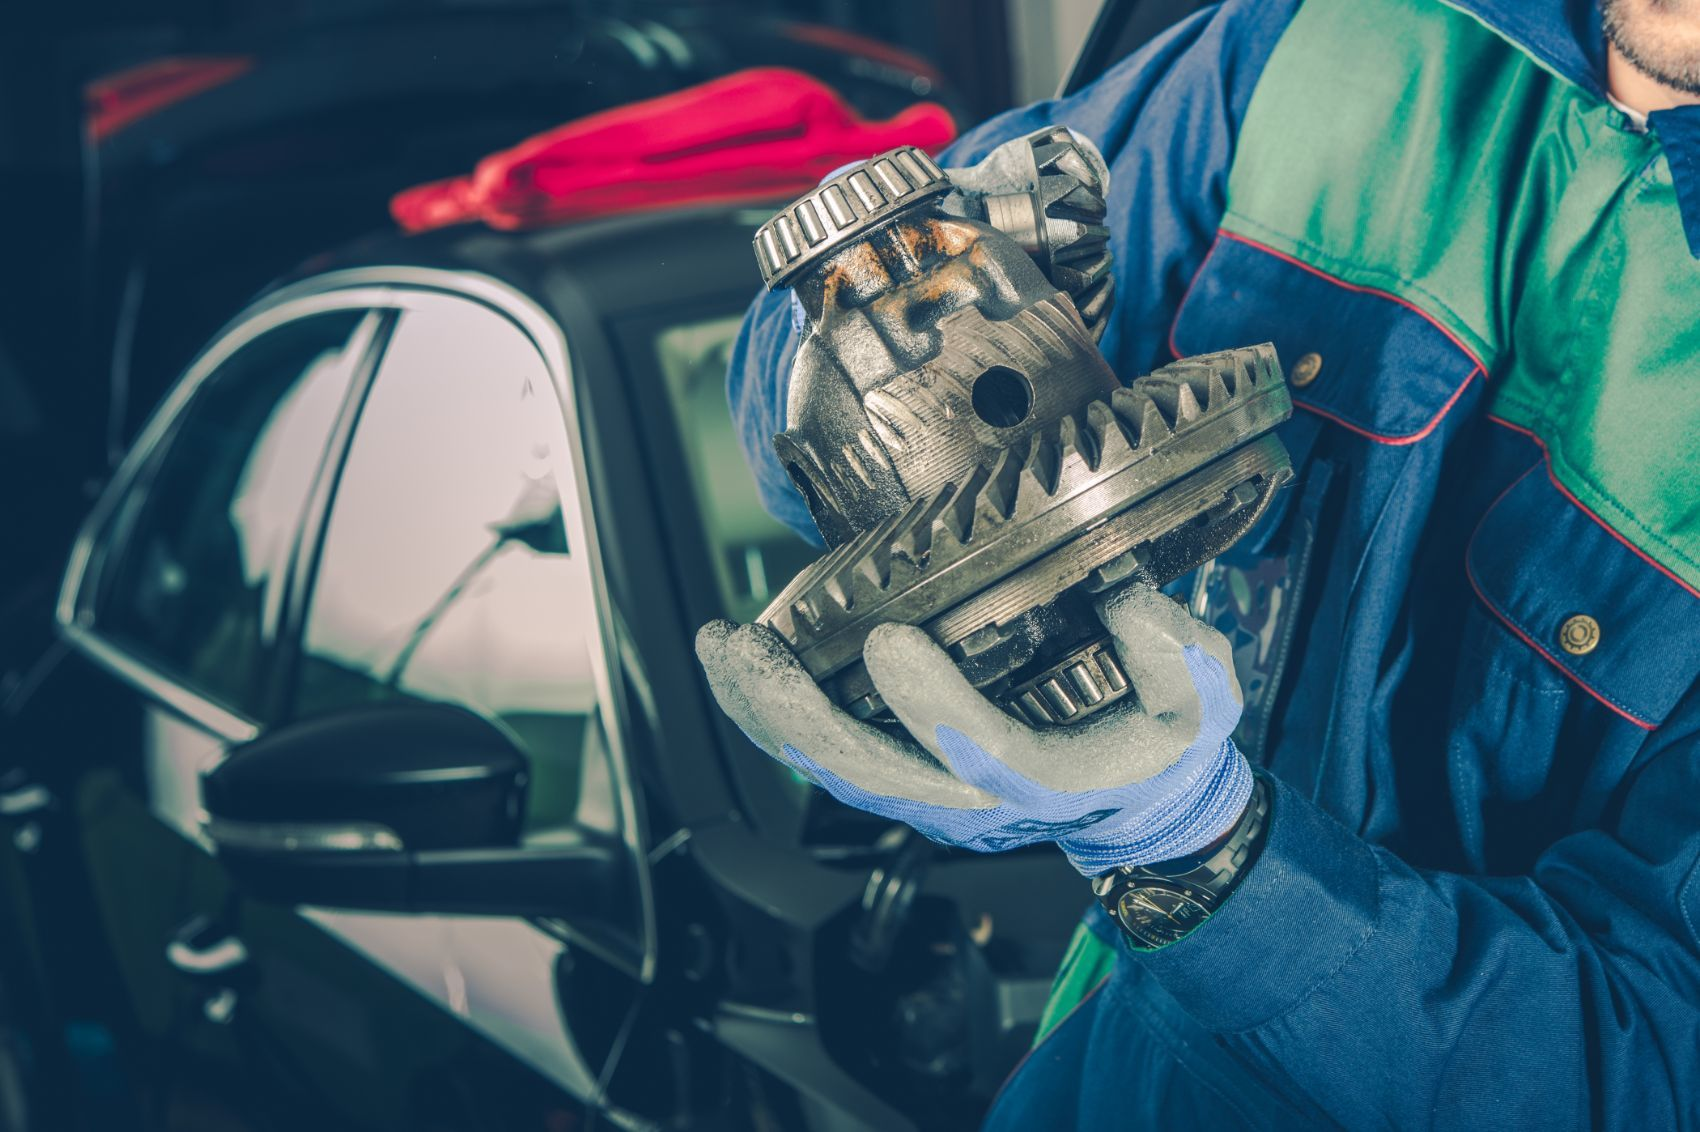 OEM vs. Aftermarket Parts: What Are The Differences & Which One Should You Buy?